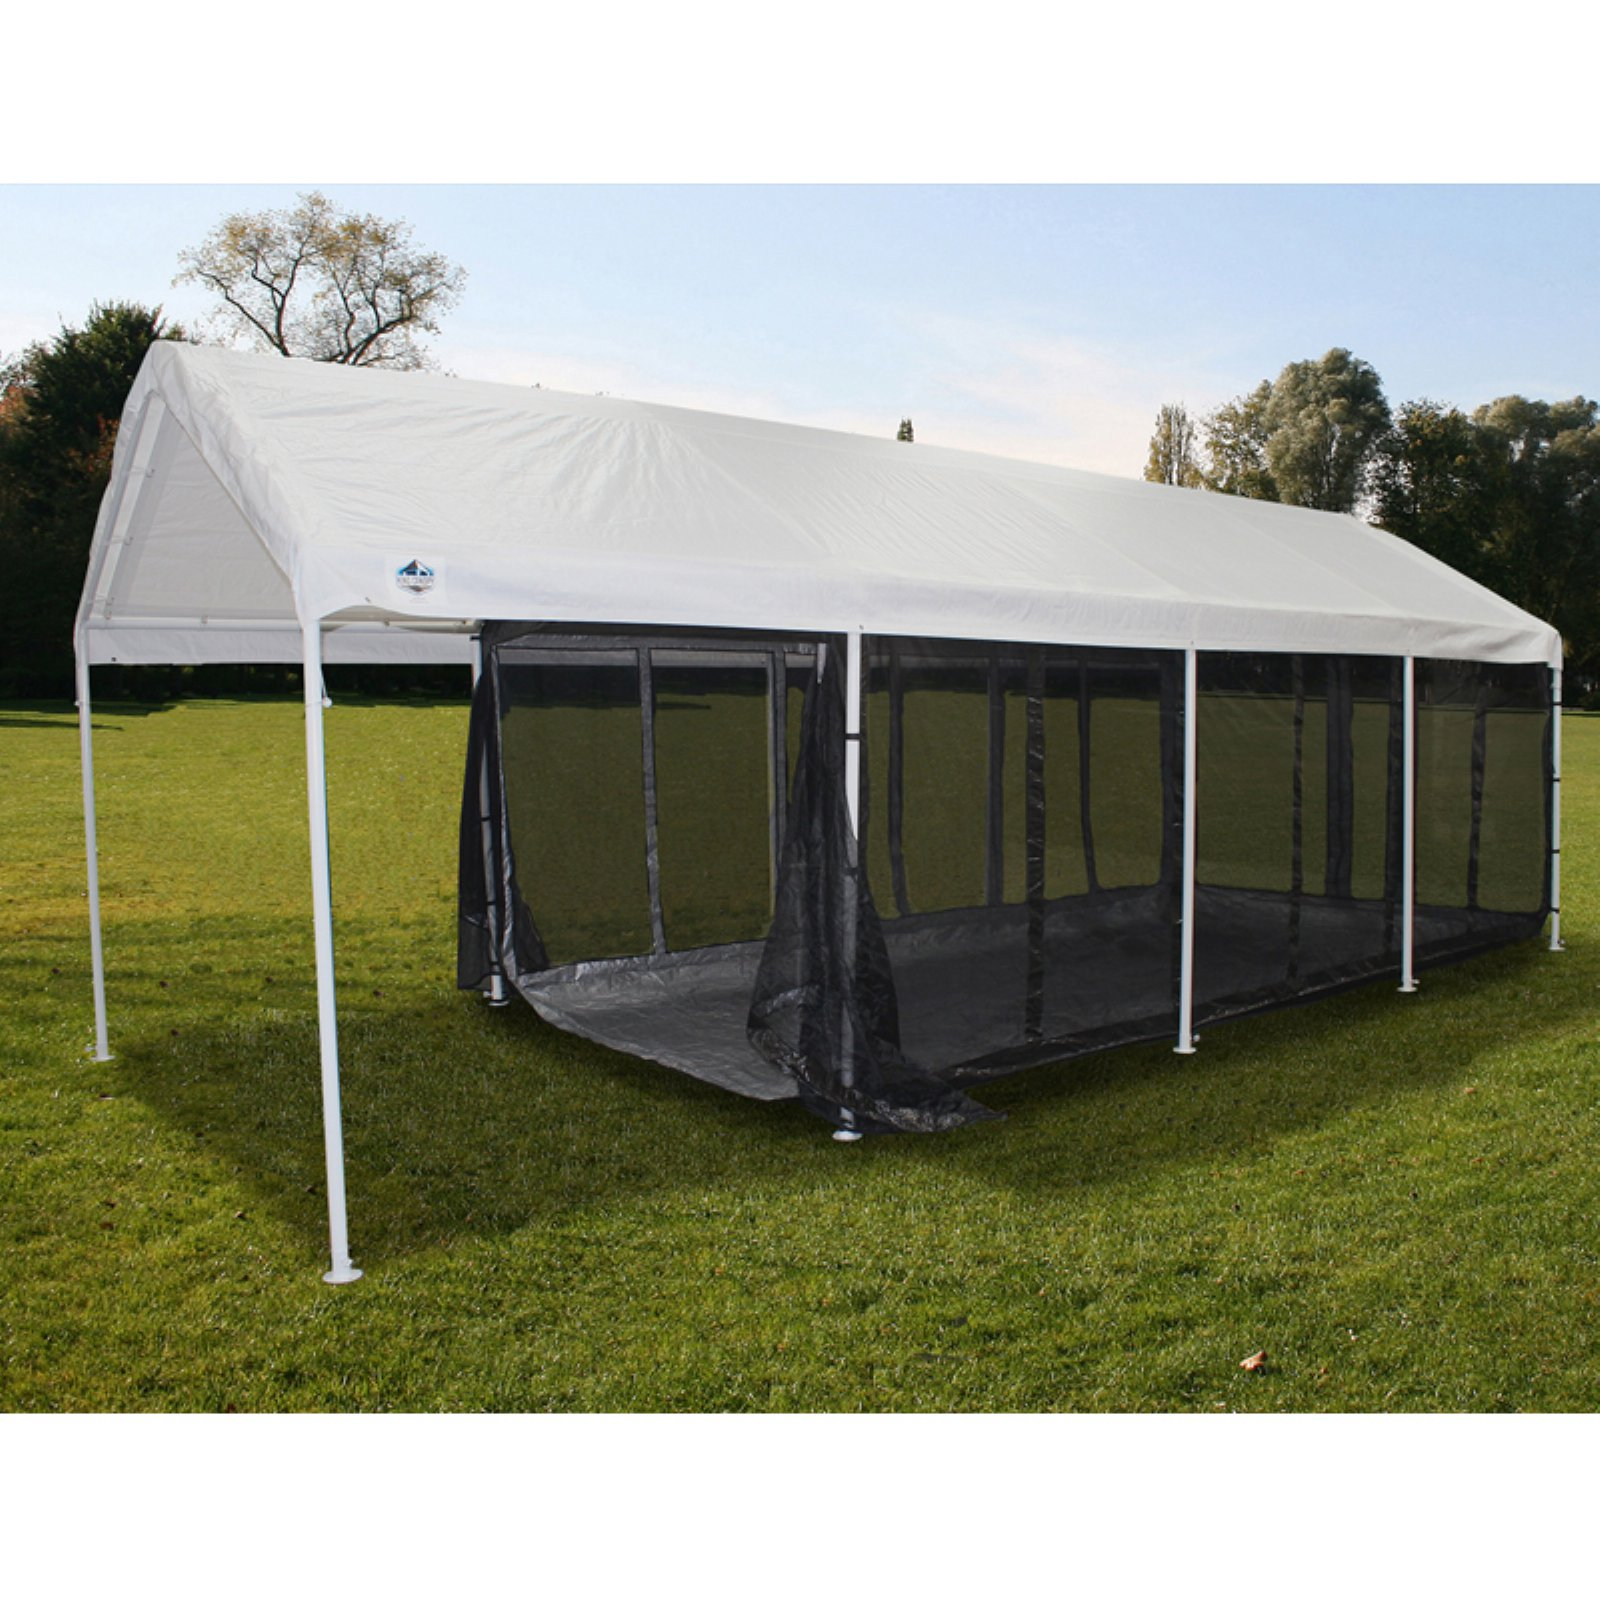 King Canopy 10 x 20 ft. Black Canopy Screen Room with Floor  sc 1 st  Walmart & King Canopy 10 x 20 ft. Black Canopy Screen Room with Floor ...